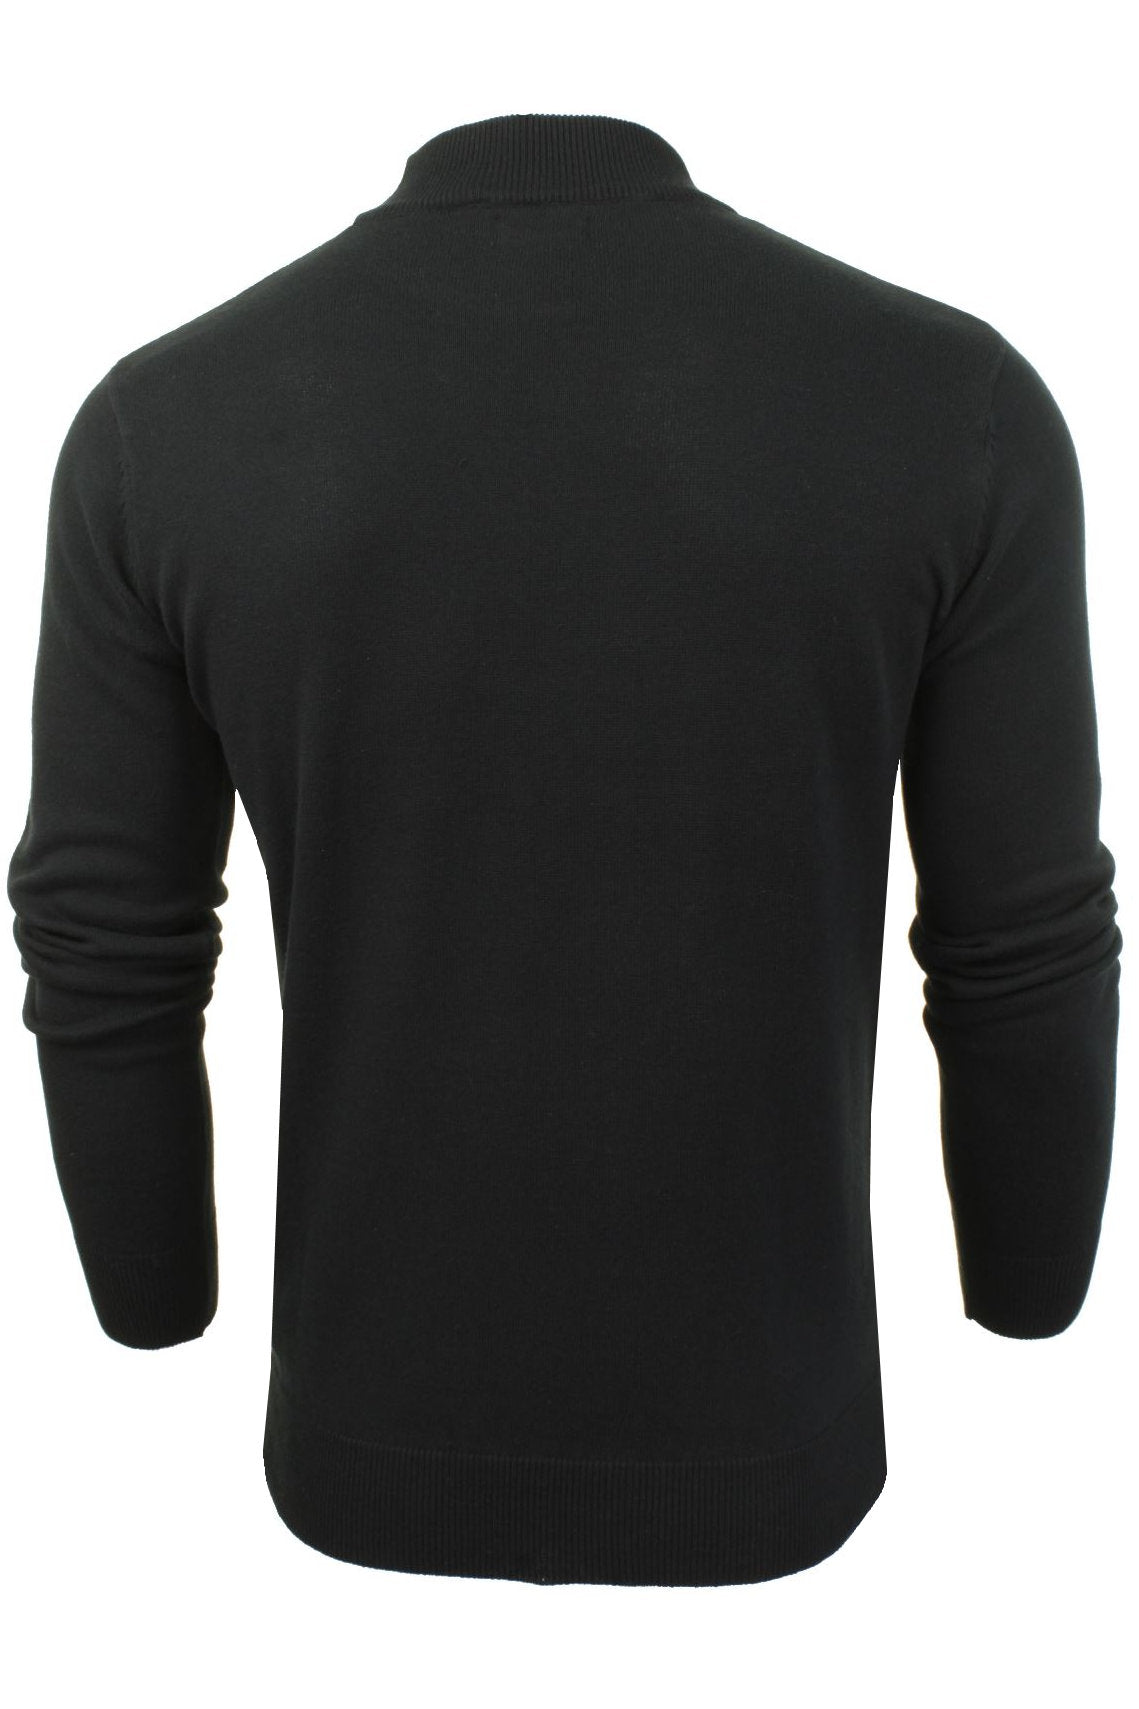 Mens Turtle Neck Jumper by Brave Soul_03_Mk-181Turtle-X_Jet Black